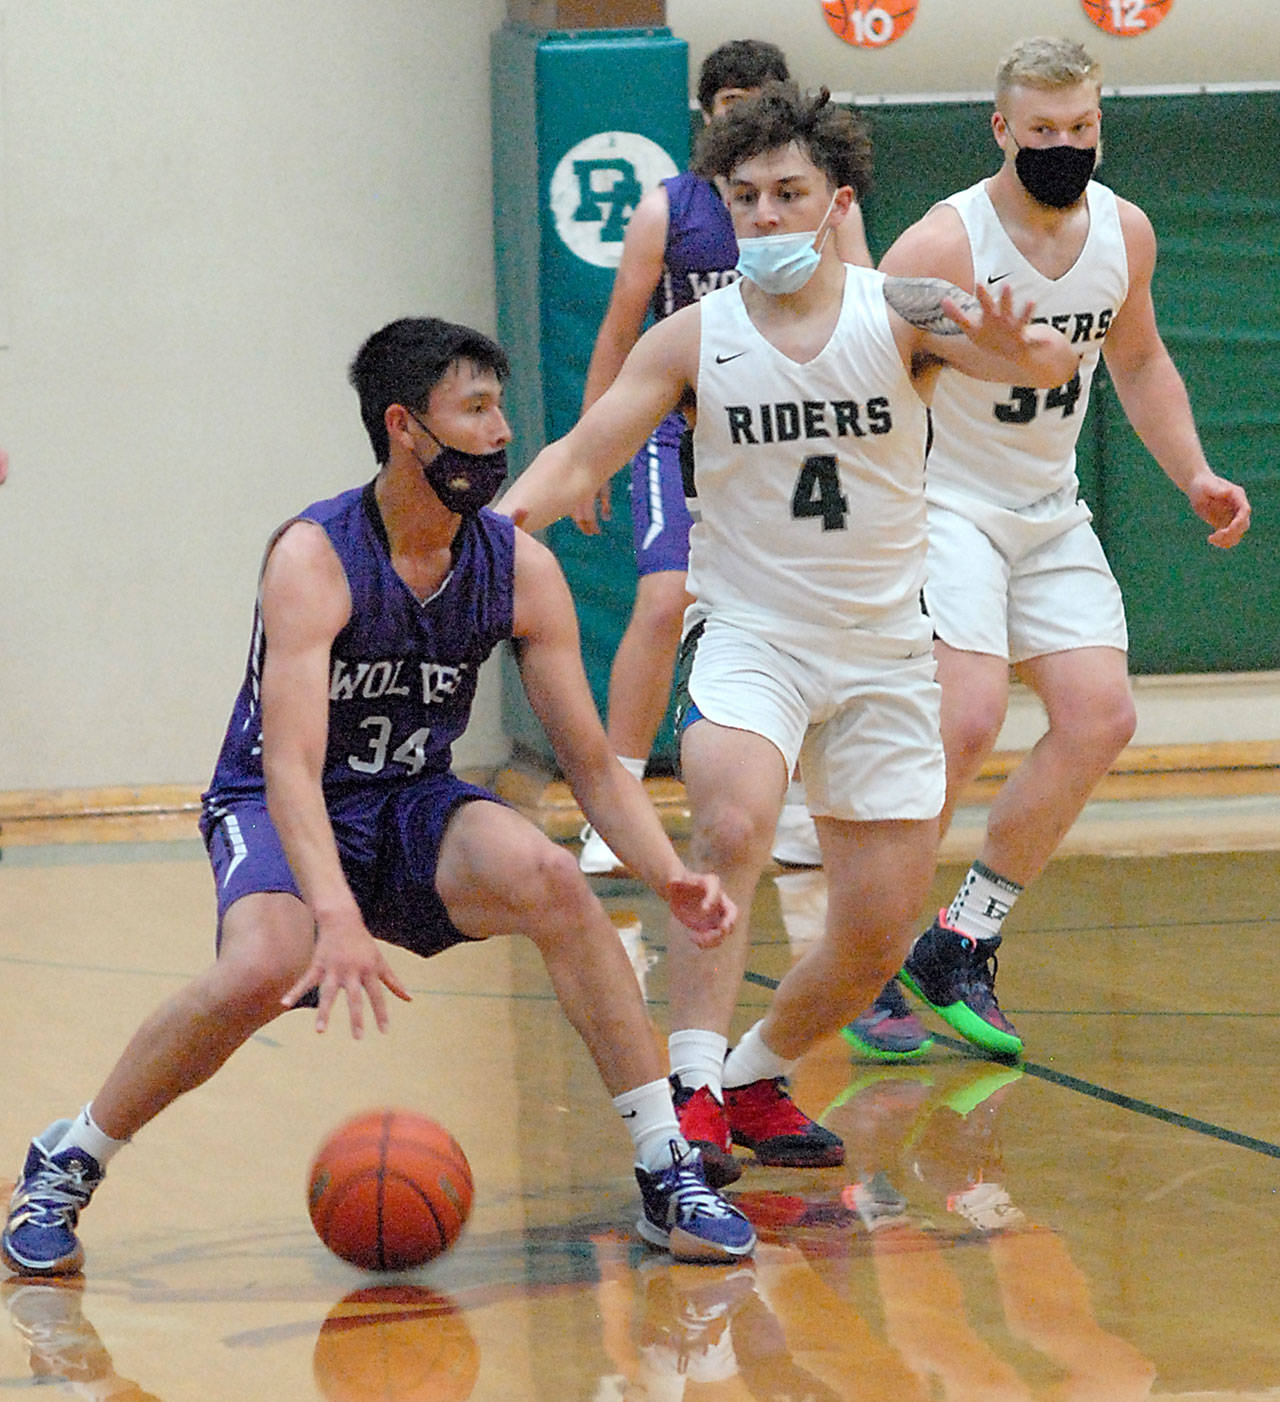 Sequim's Isiah Moore, left, is defended by Port Angeles' Jeremiah Hall, center, and Adam Watkins in the first quarter of play on Wednesday at Port Angeles High School. (Keith Thorpe/Peninsula Daily News)